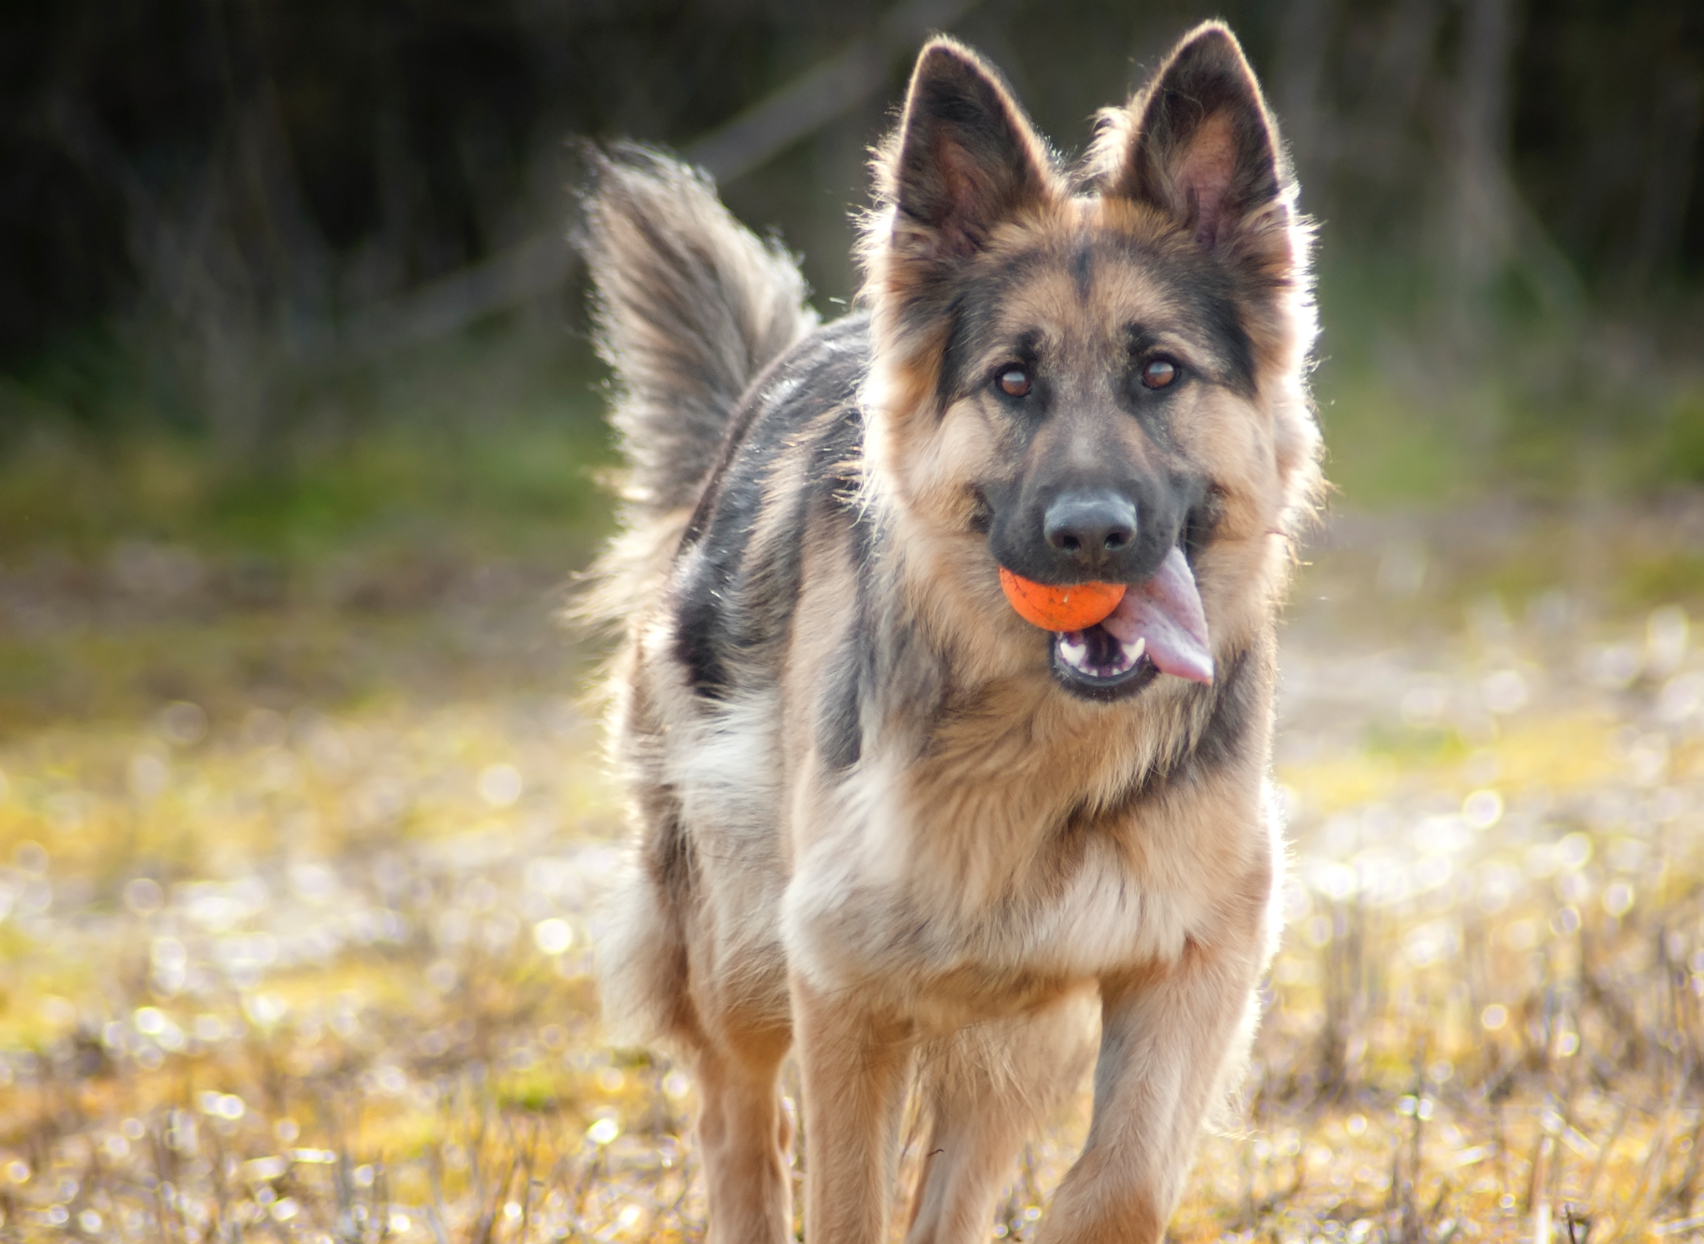 german shepherd dog with orange ball in their mouth outside